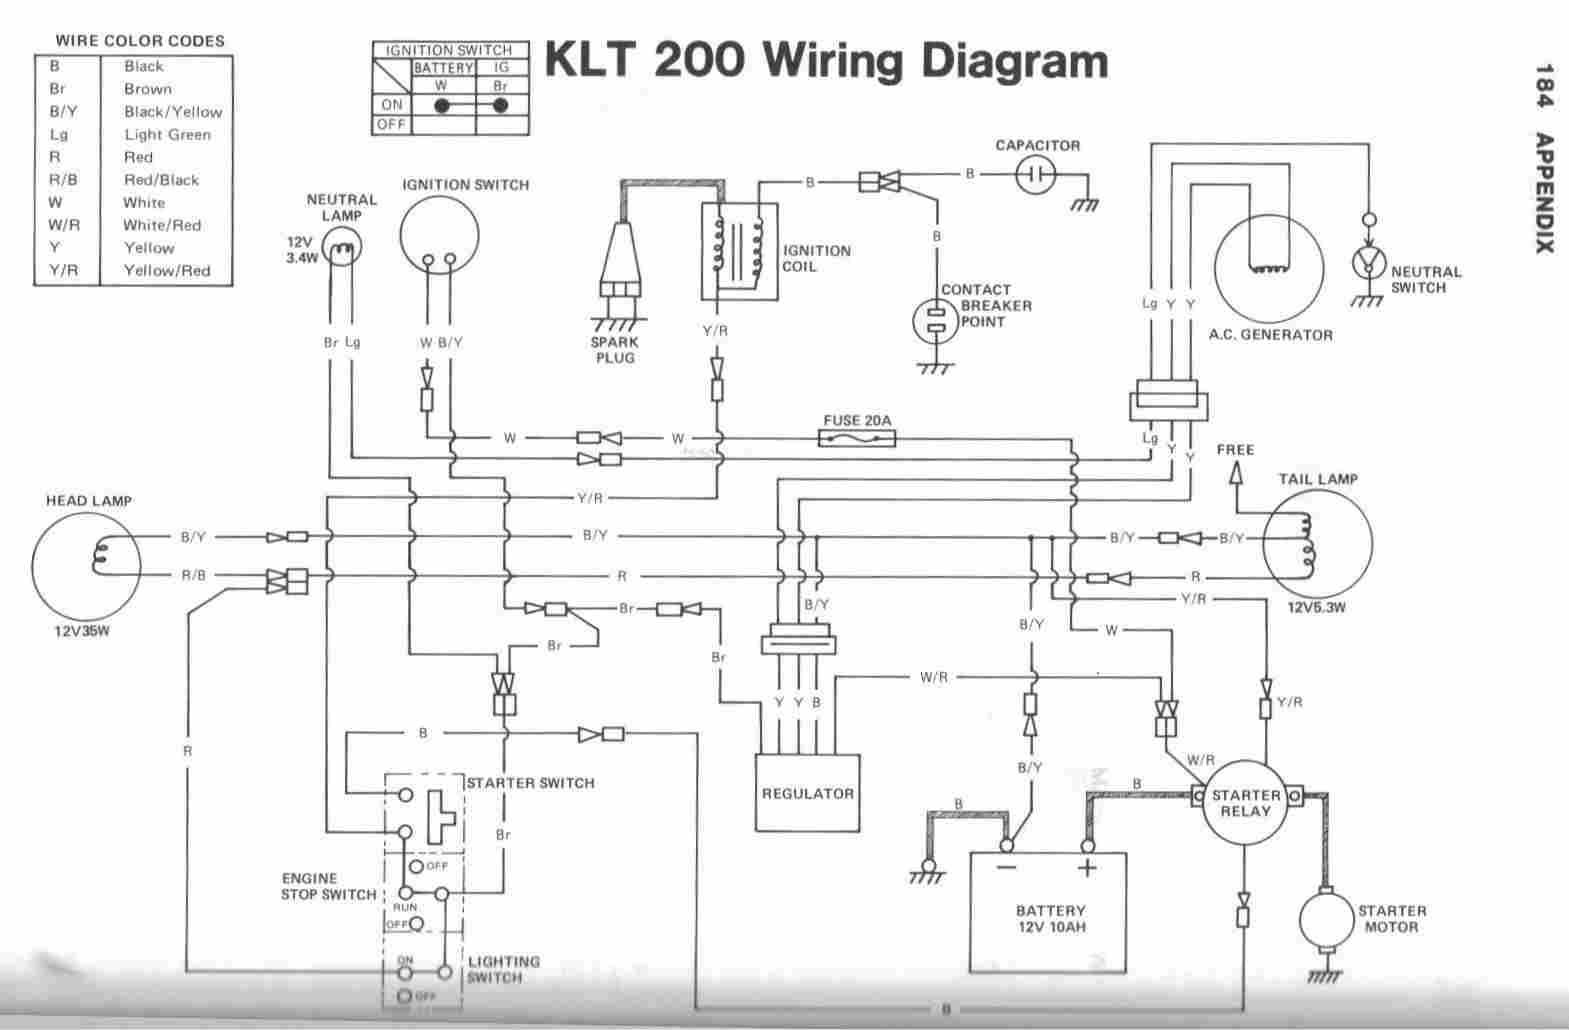 2869034594ce054a636782e5c44b61b4 residential electrical wiring diagrams pdf easy routing cool elec wiring basics at aneh.co